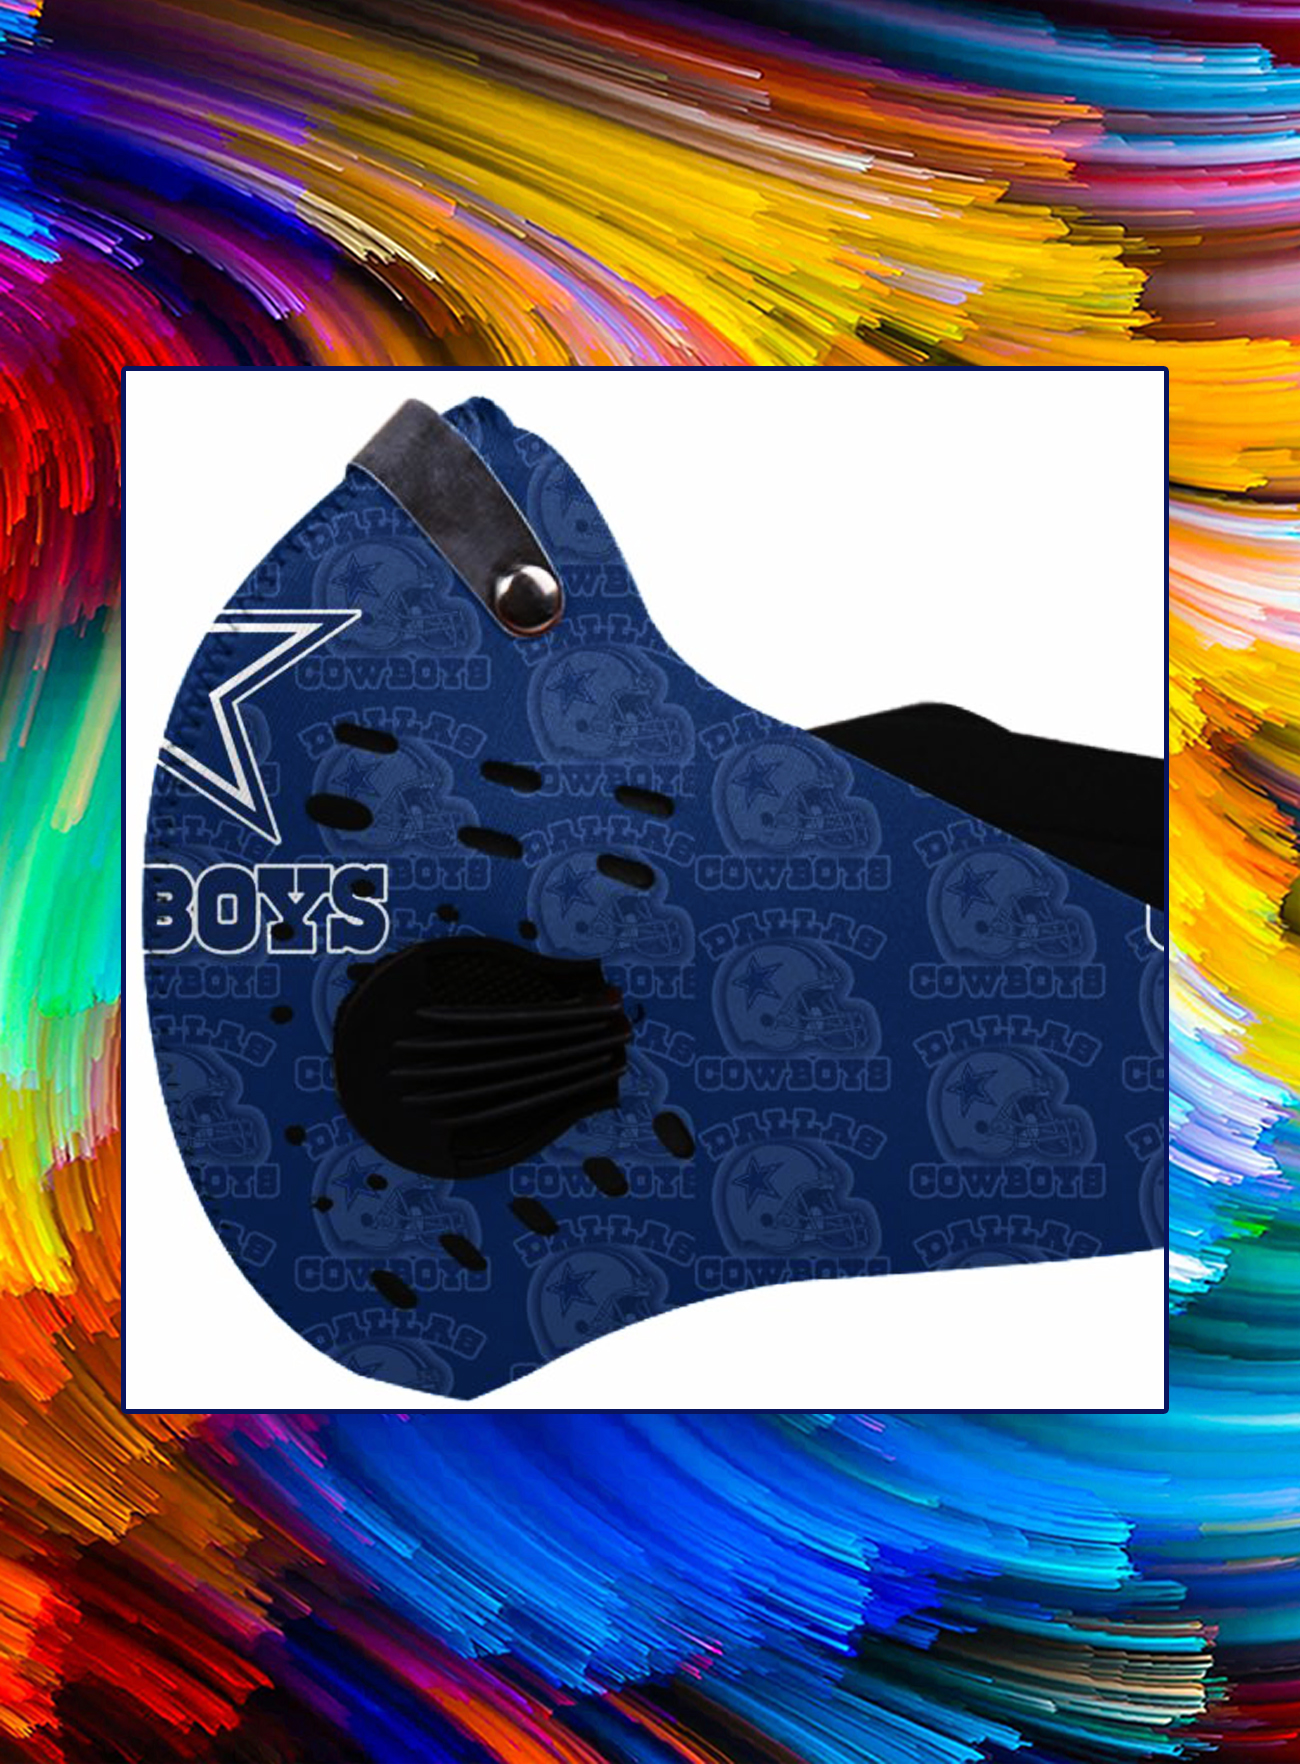 Filter face mask nfl dallas cowboys - Picture 1